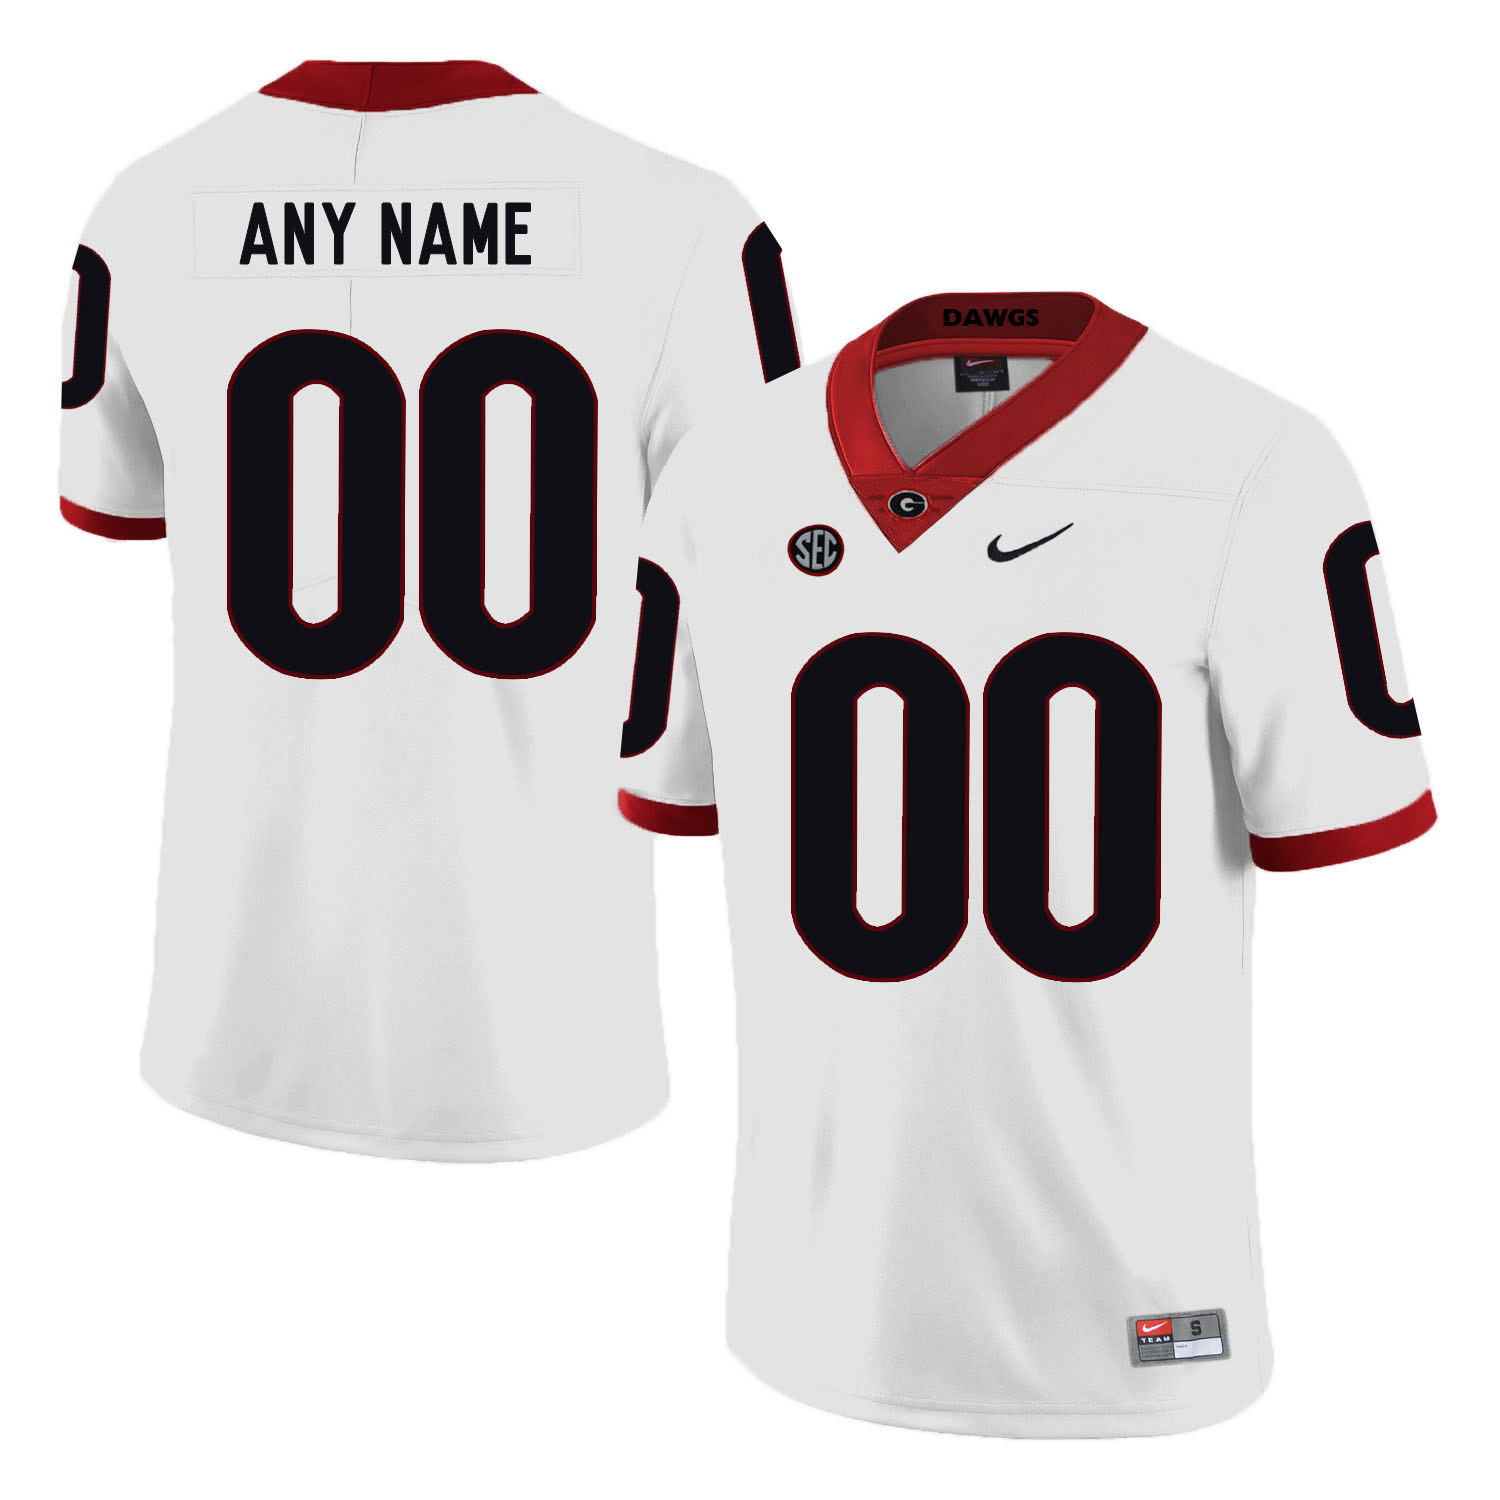 Georgia Bulldogs White Men's Customized Nike College Football Jersey